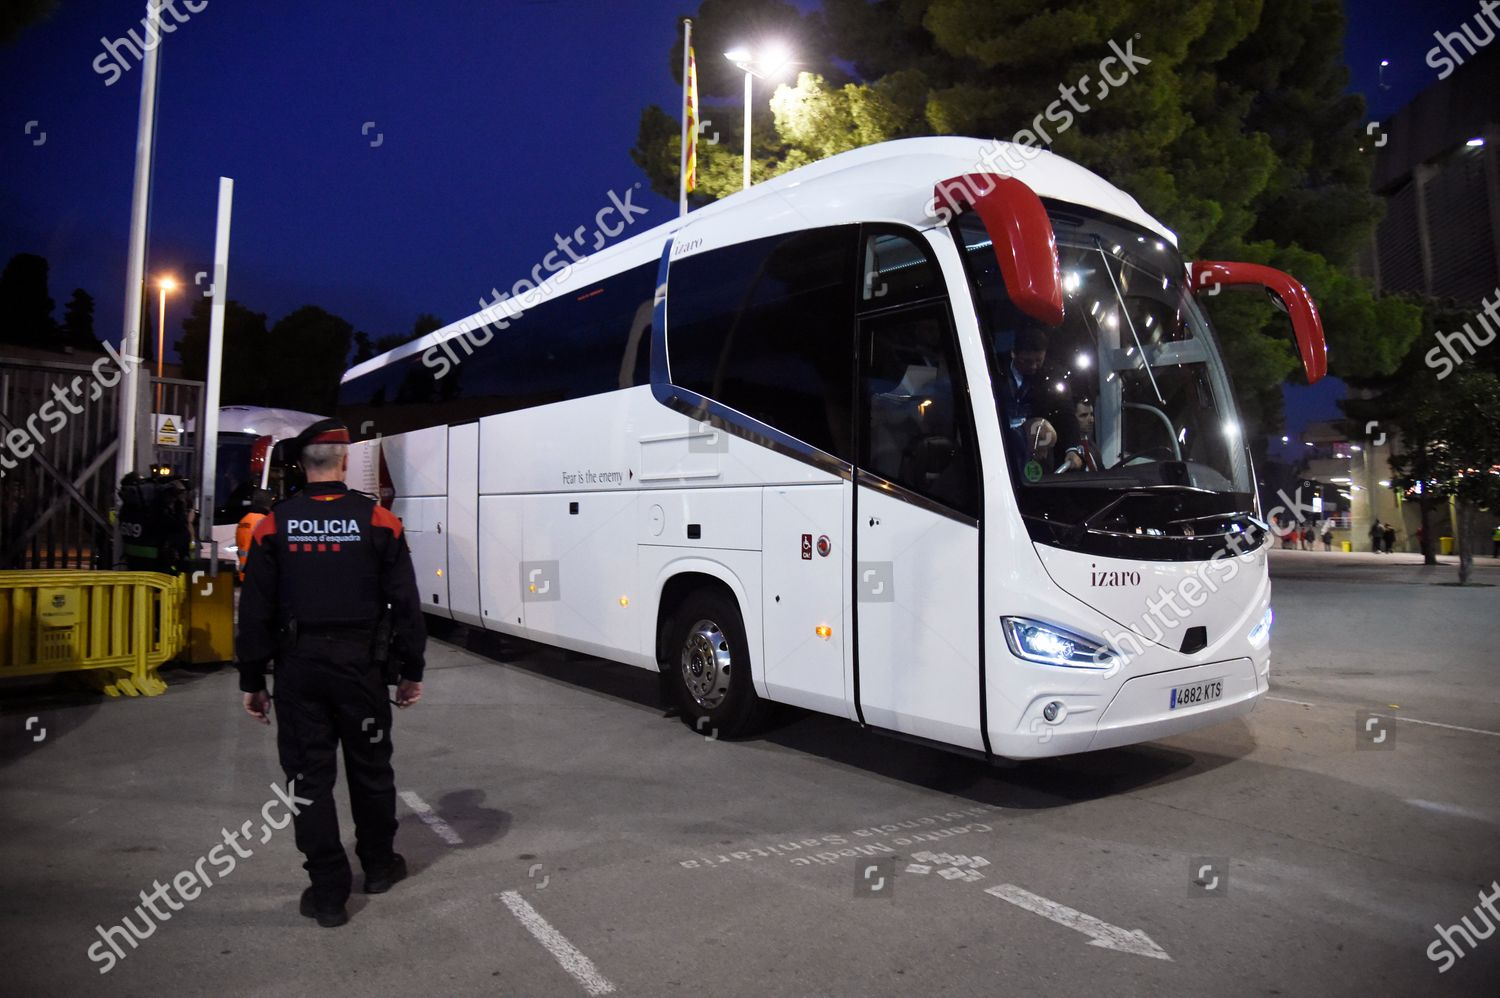 fc barcelona real madrid buses entering togethers editorial stock photo stock image shutterstock https www shutterstock com editorial image editorial barcelona v real madrid la liga football camp nou spain 18 dec 2019 10507175q